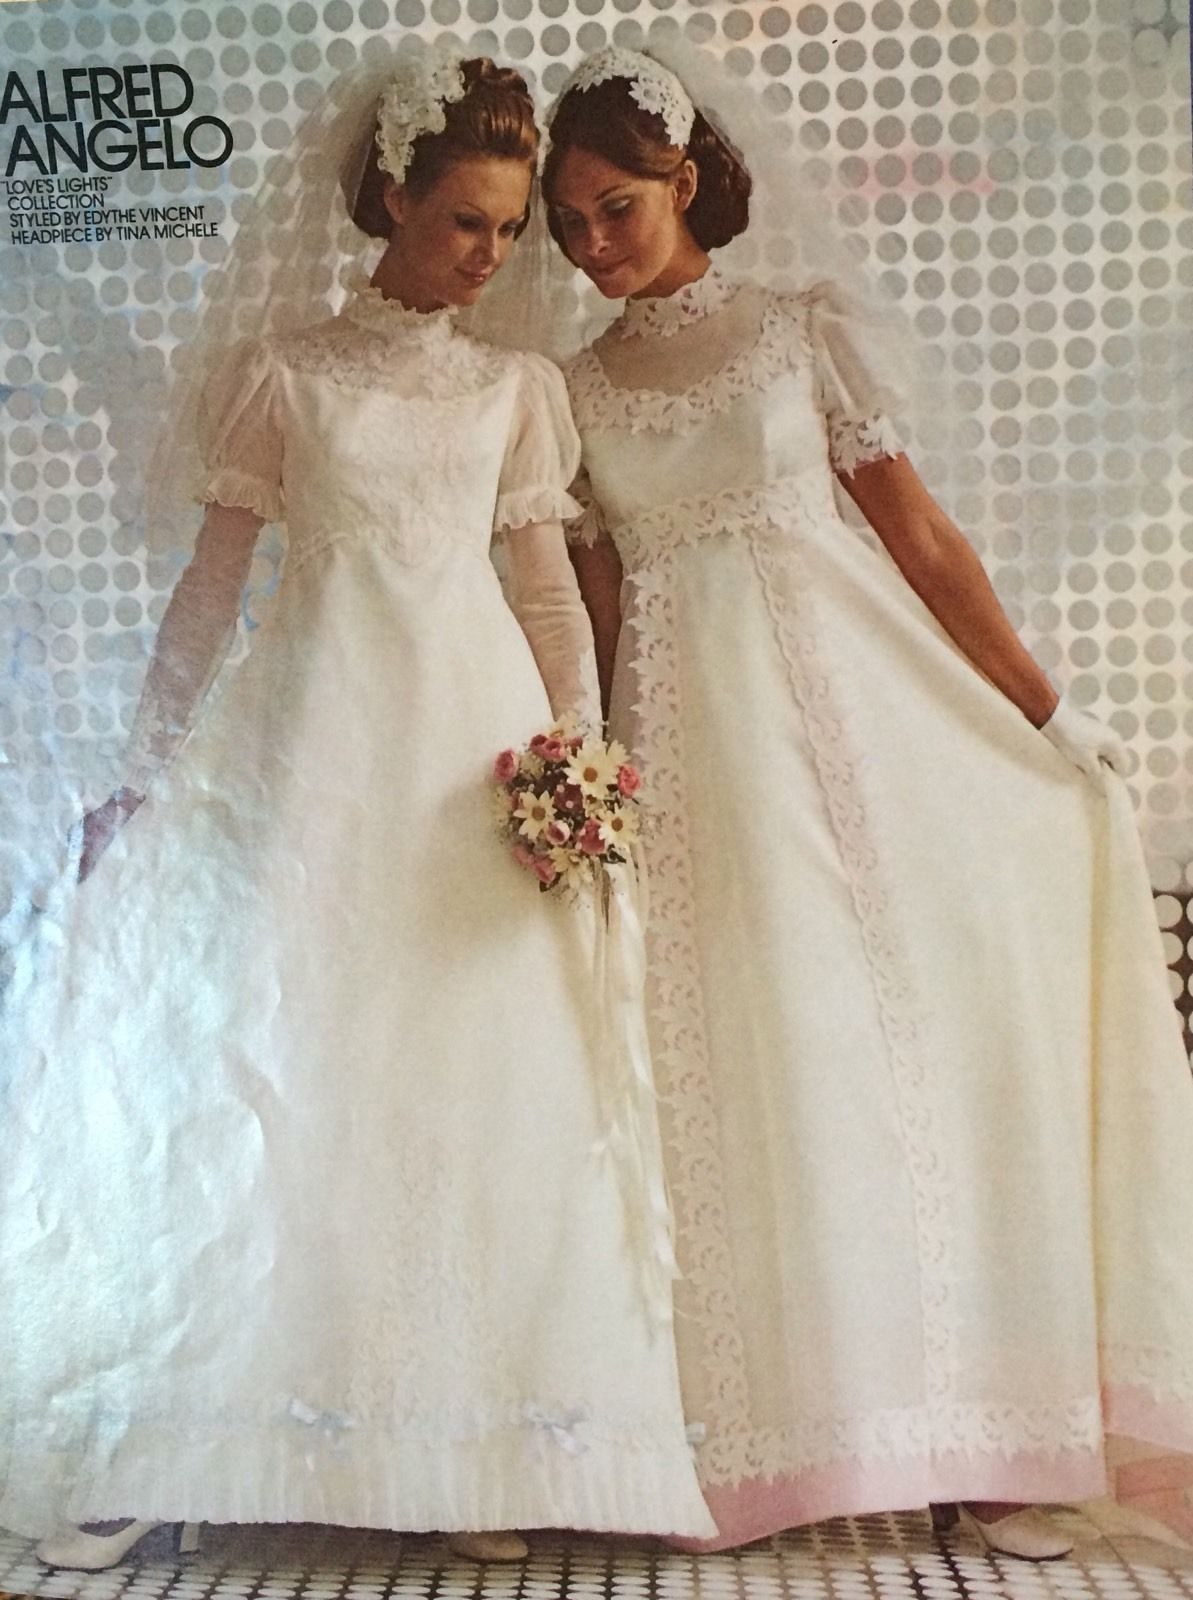 1970s wedding dress  Vintage s Alfred Angelo Wedding Dress Never Worn  The Simply